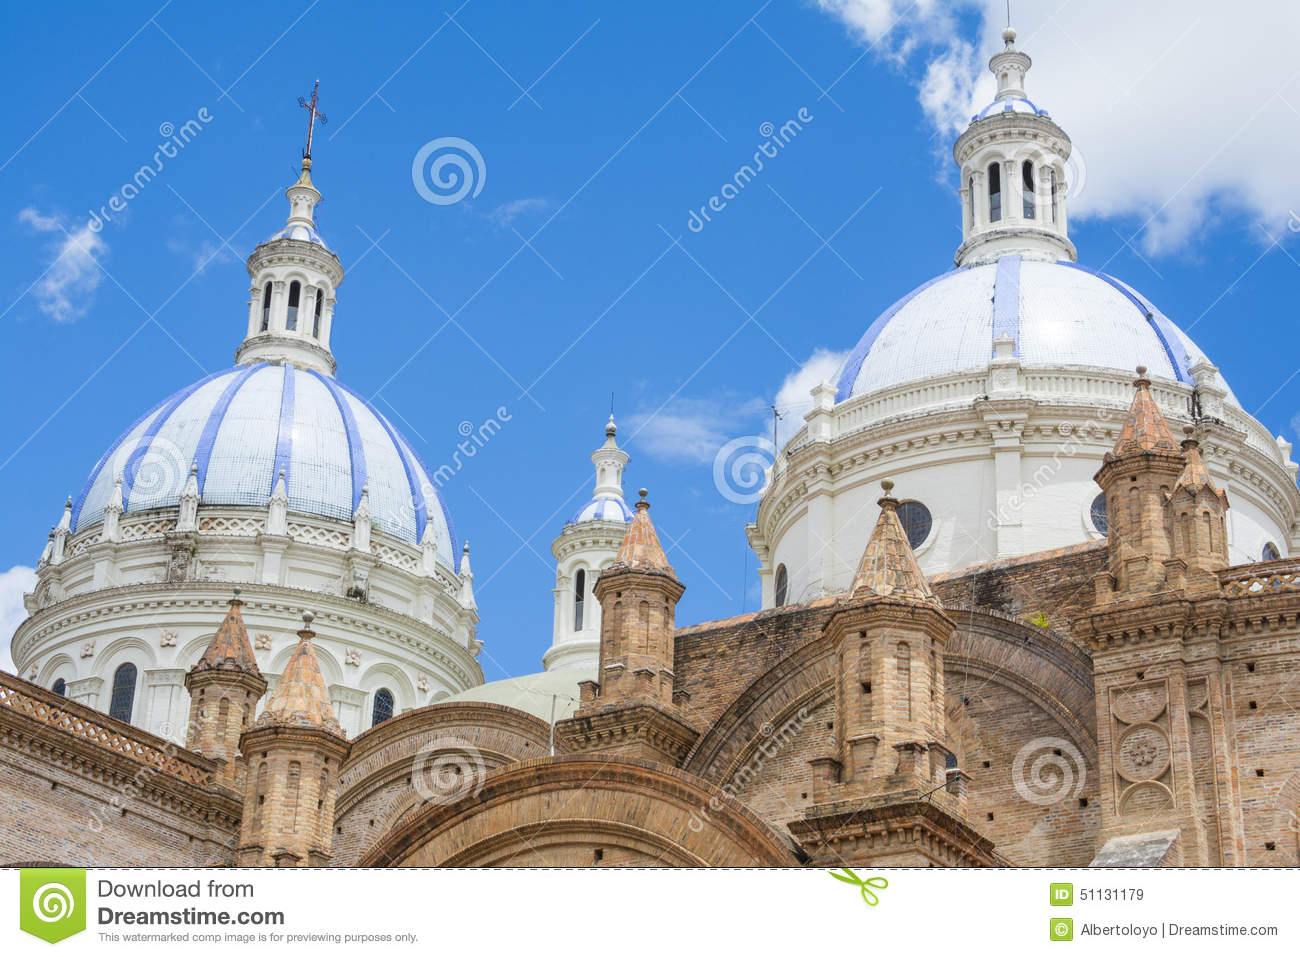 Domes of the New cathedral of Cuenca, Ecuador